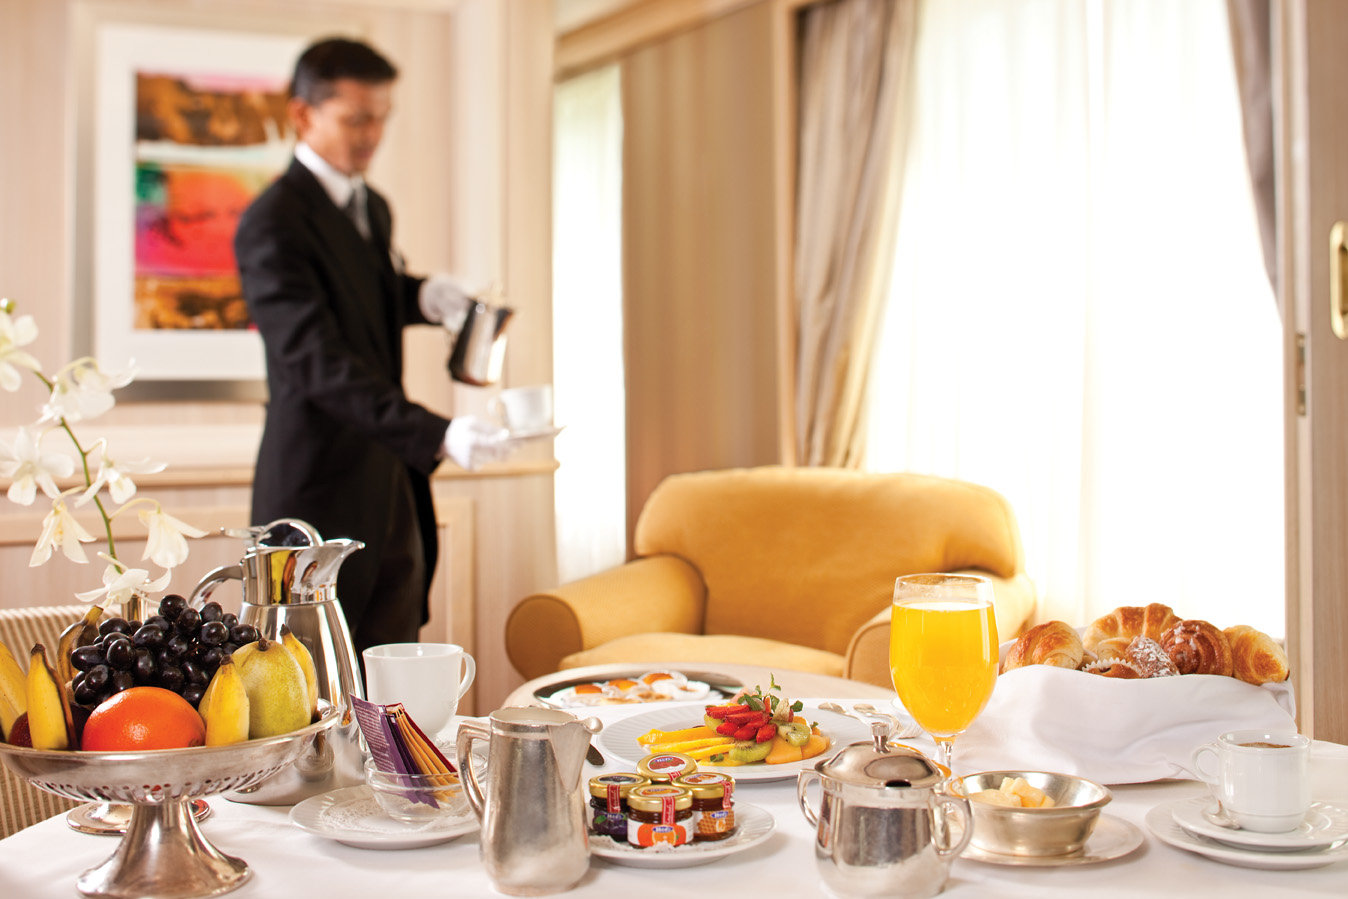 Butler Breakfast in Suite - Room 741 - Deck 7 Midship Silver Wind - Silversea Cruises